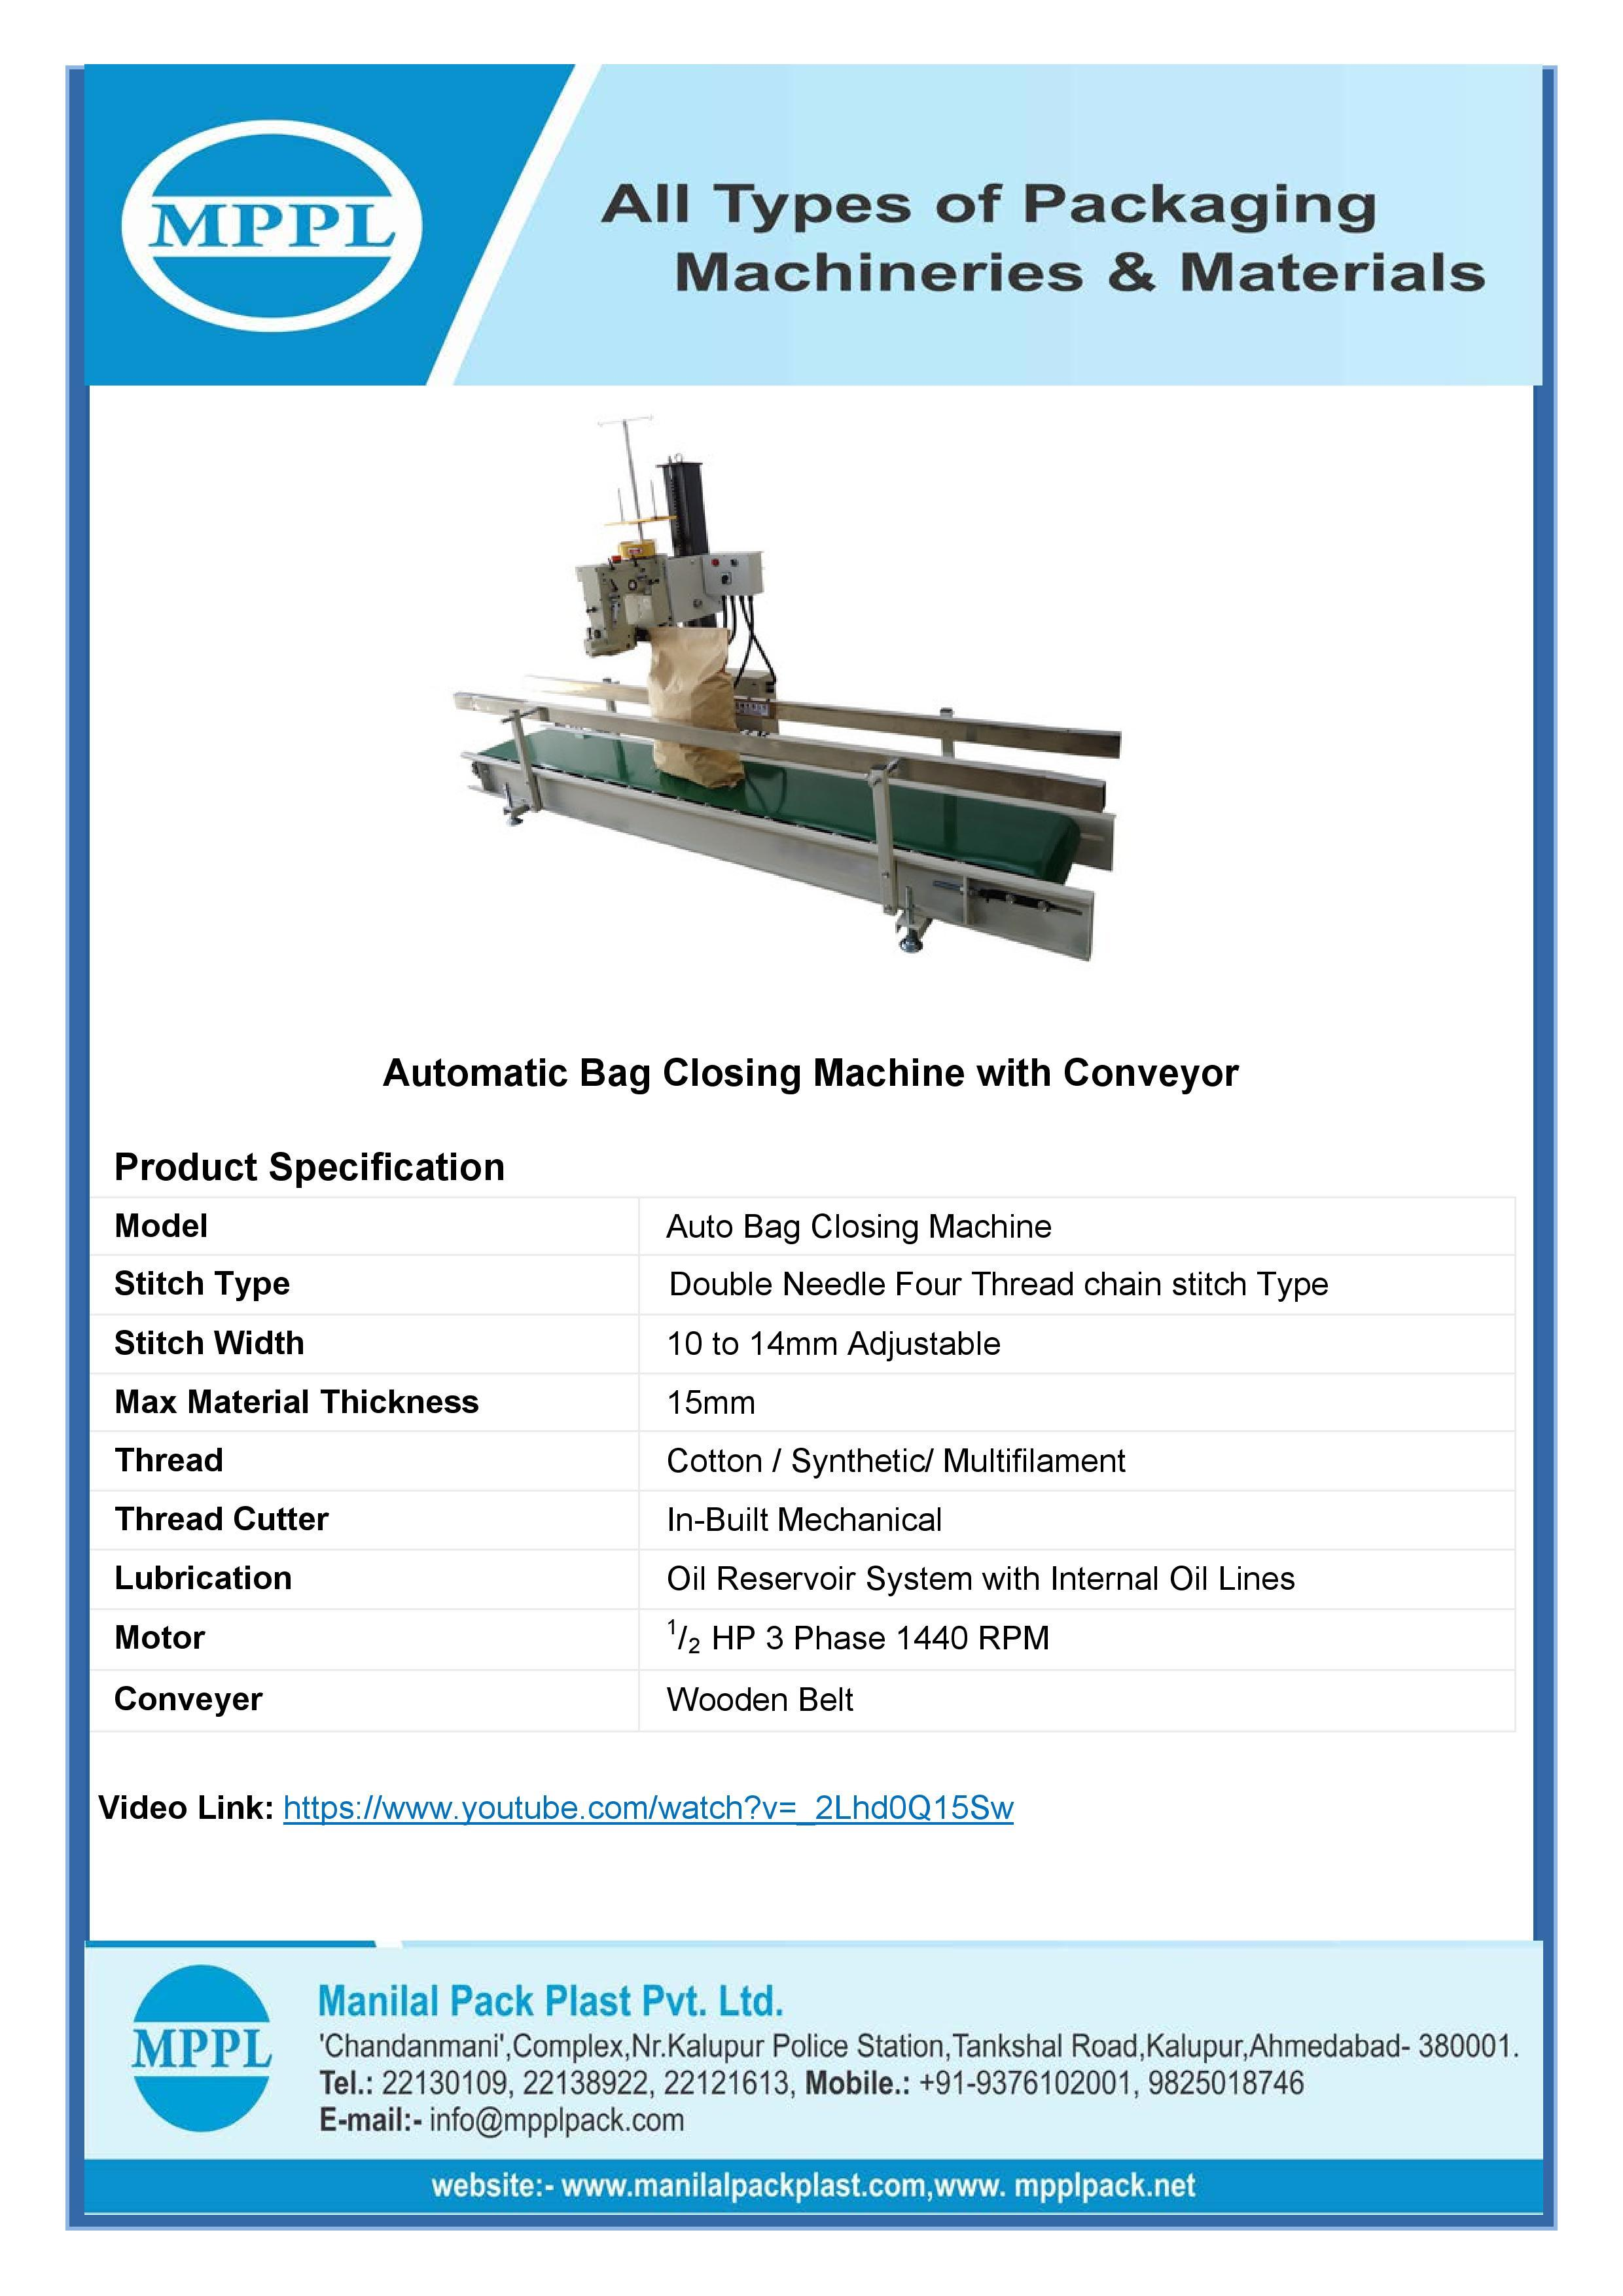 Automatic Bag Closing Machine with Conveyor